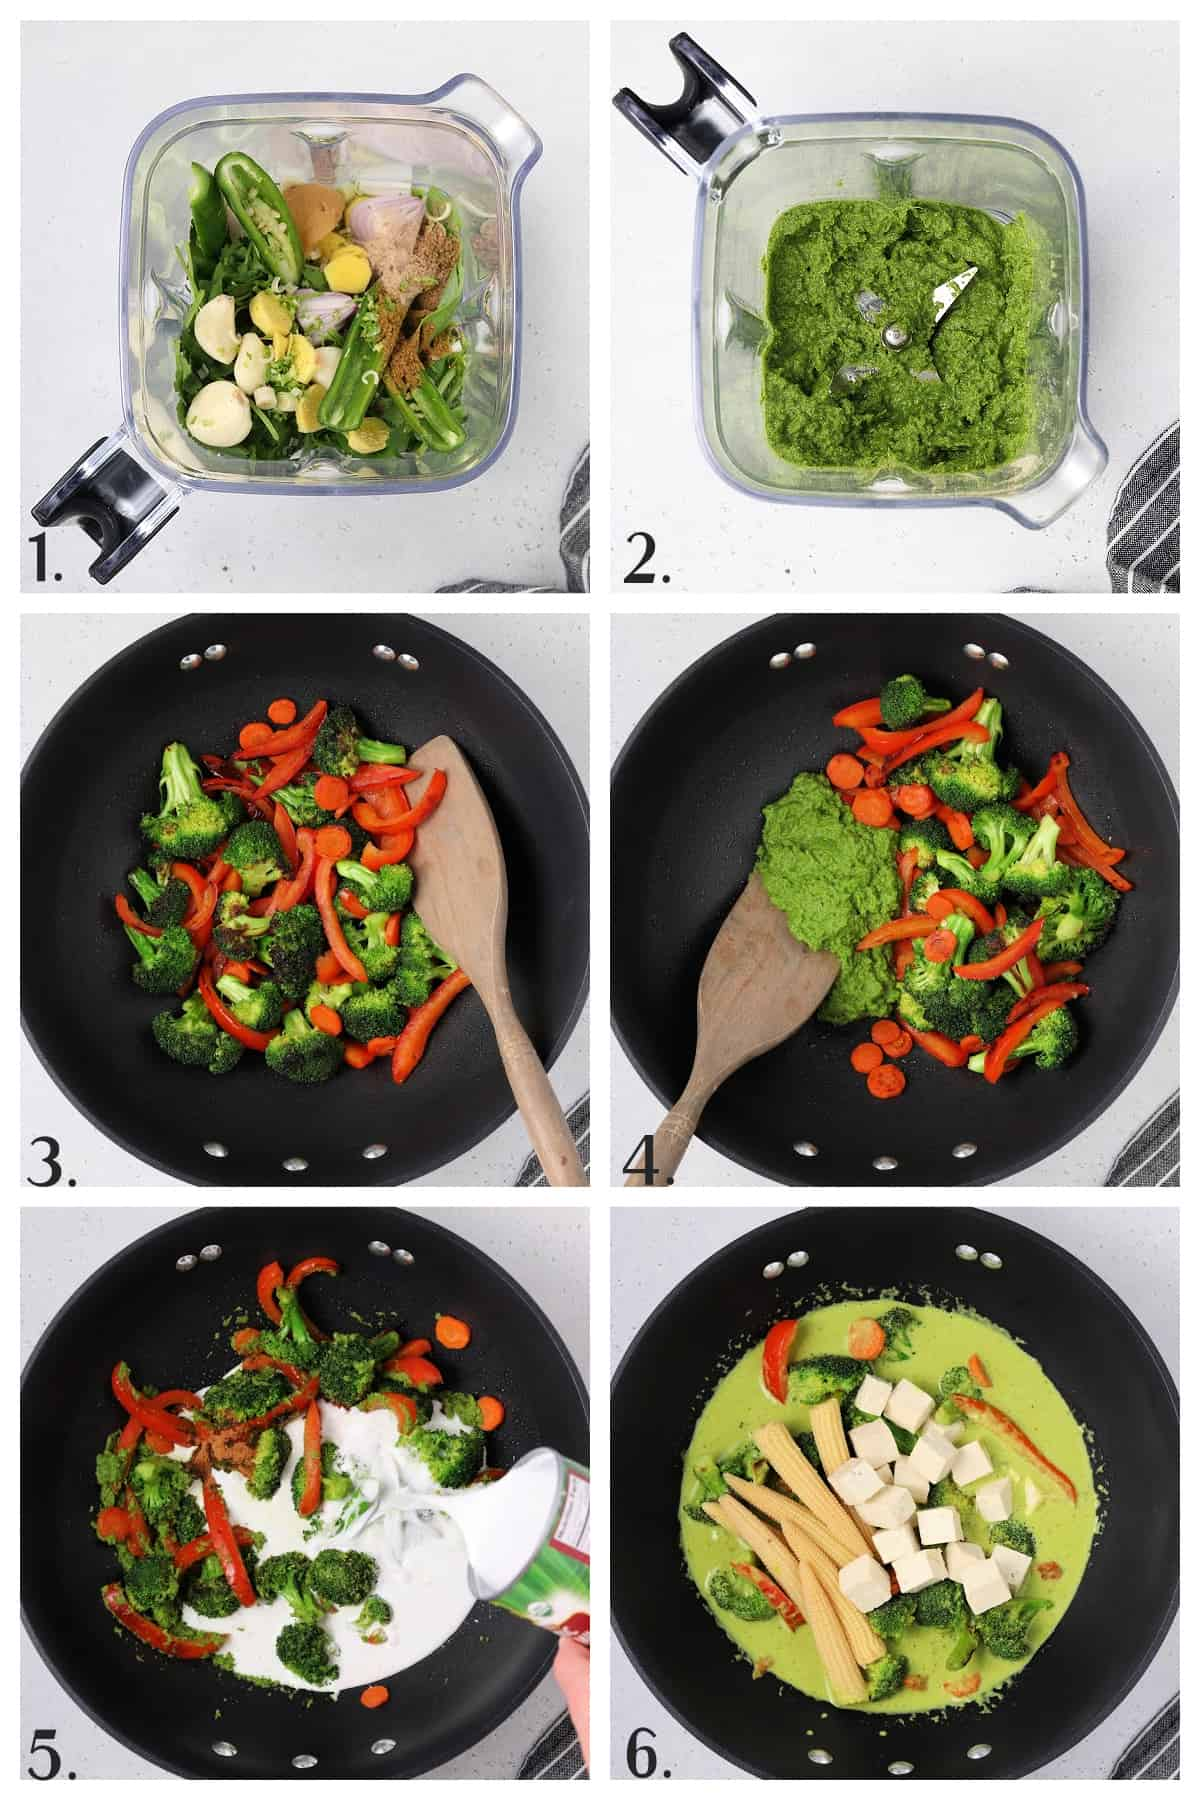 Six process photos of blending and cooking ingredients for recipe.